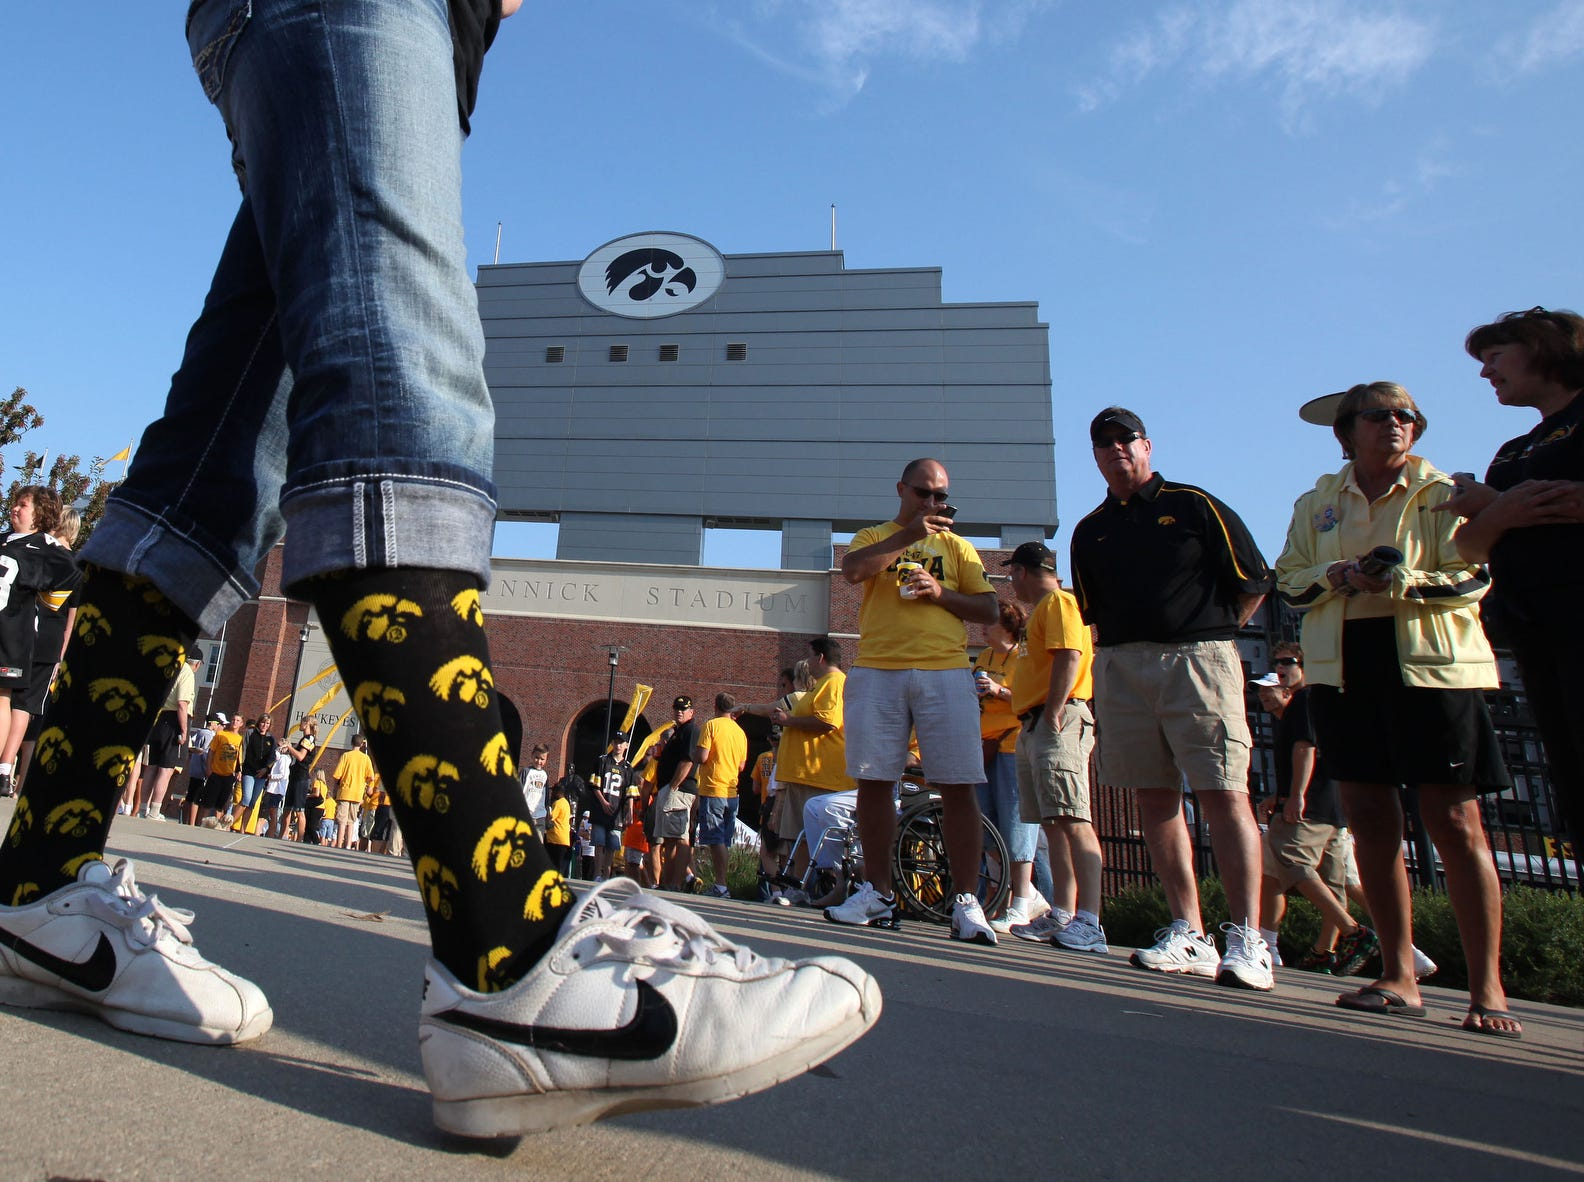 Abby Zaug, 16, of West Des Moines sports her school spirit on her socks outside Kinnick Stadium before Iowa's football season opener Sept. 5, 2009 against Northern Iowa.